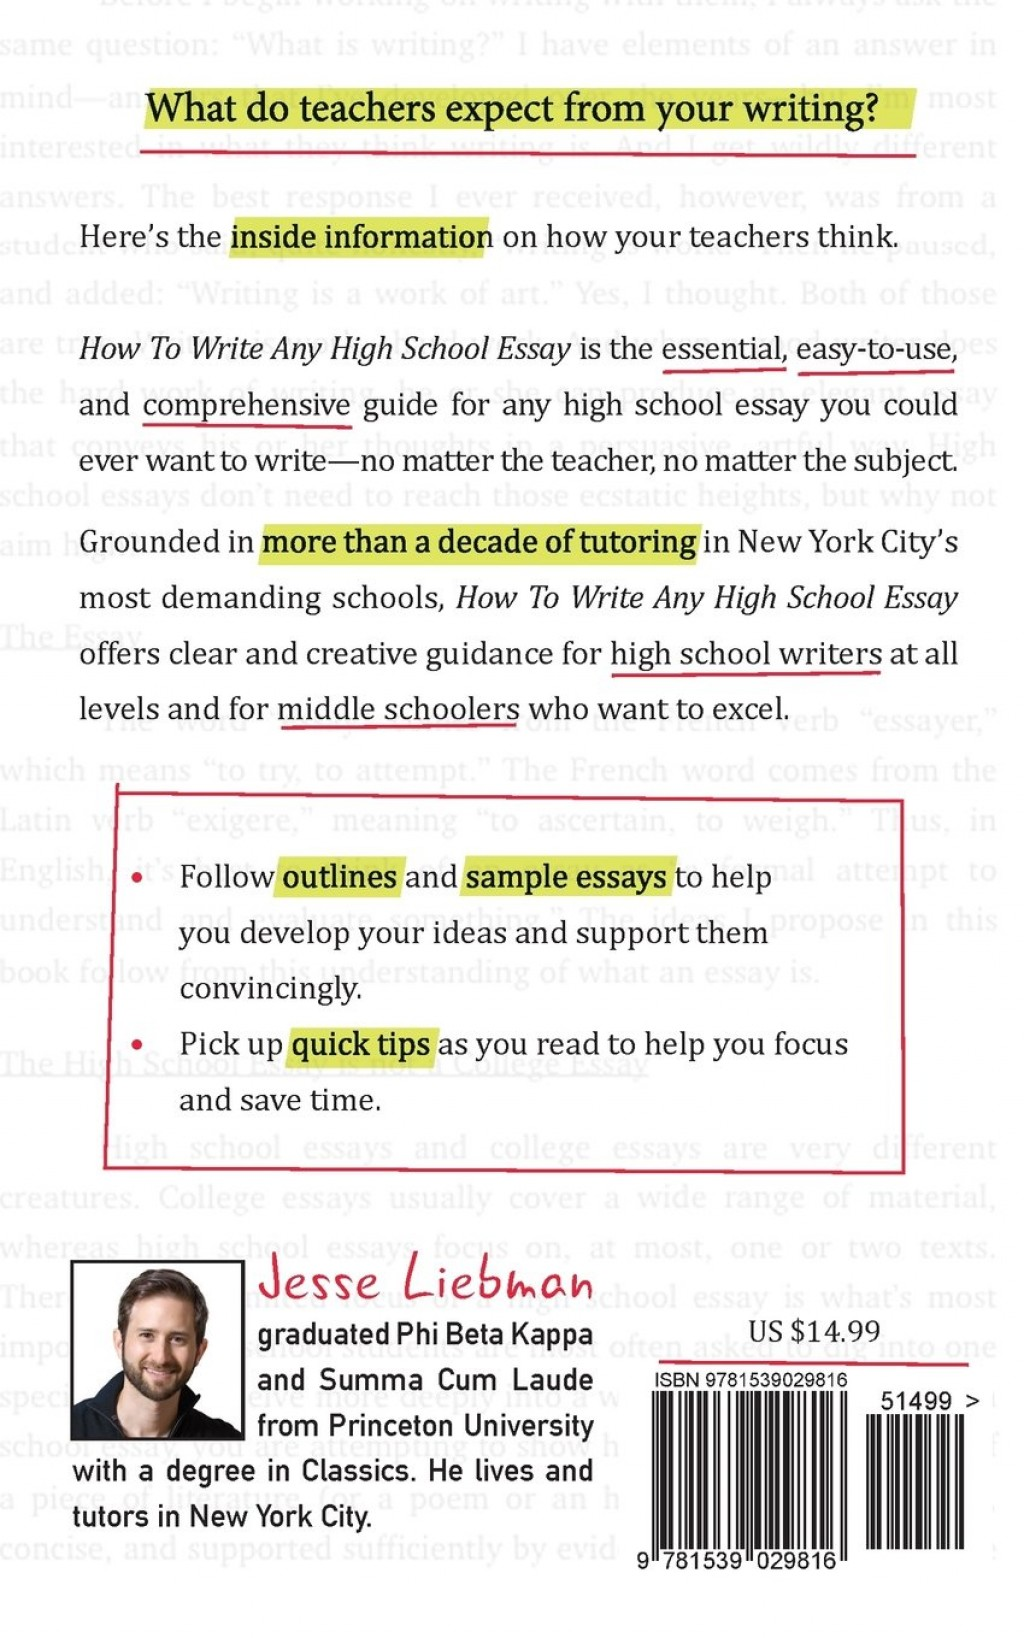 017 71baet3vxyl How To Write Essays Essay Astounding A Poetry For Ap Lit About Yourself Paper In Spanish On Word Large